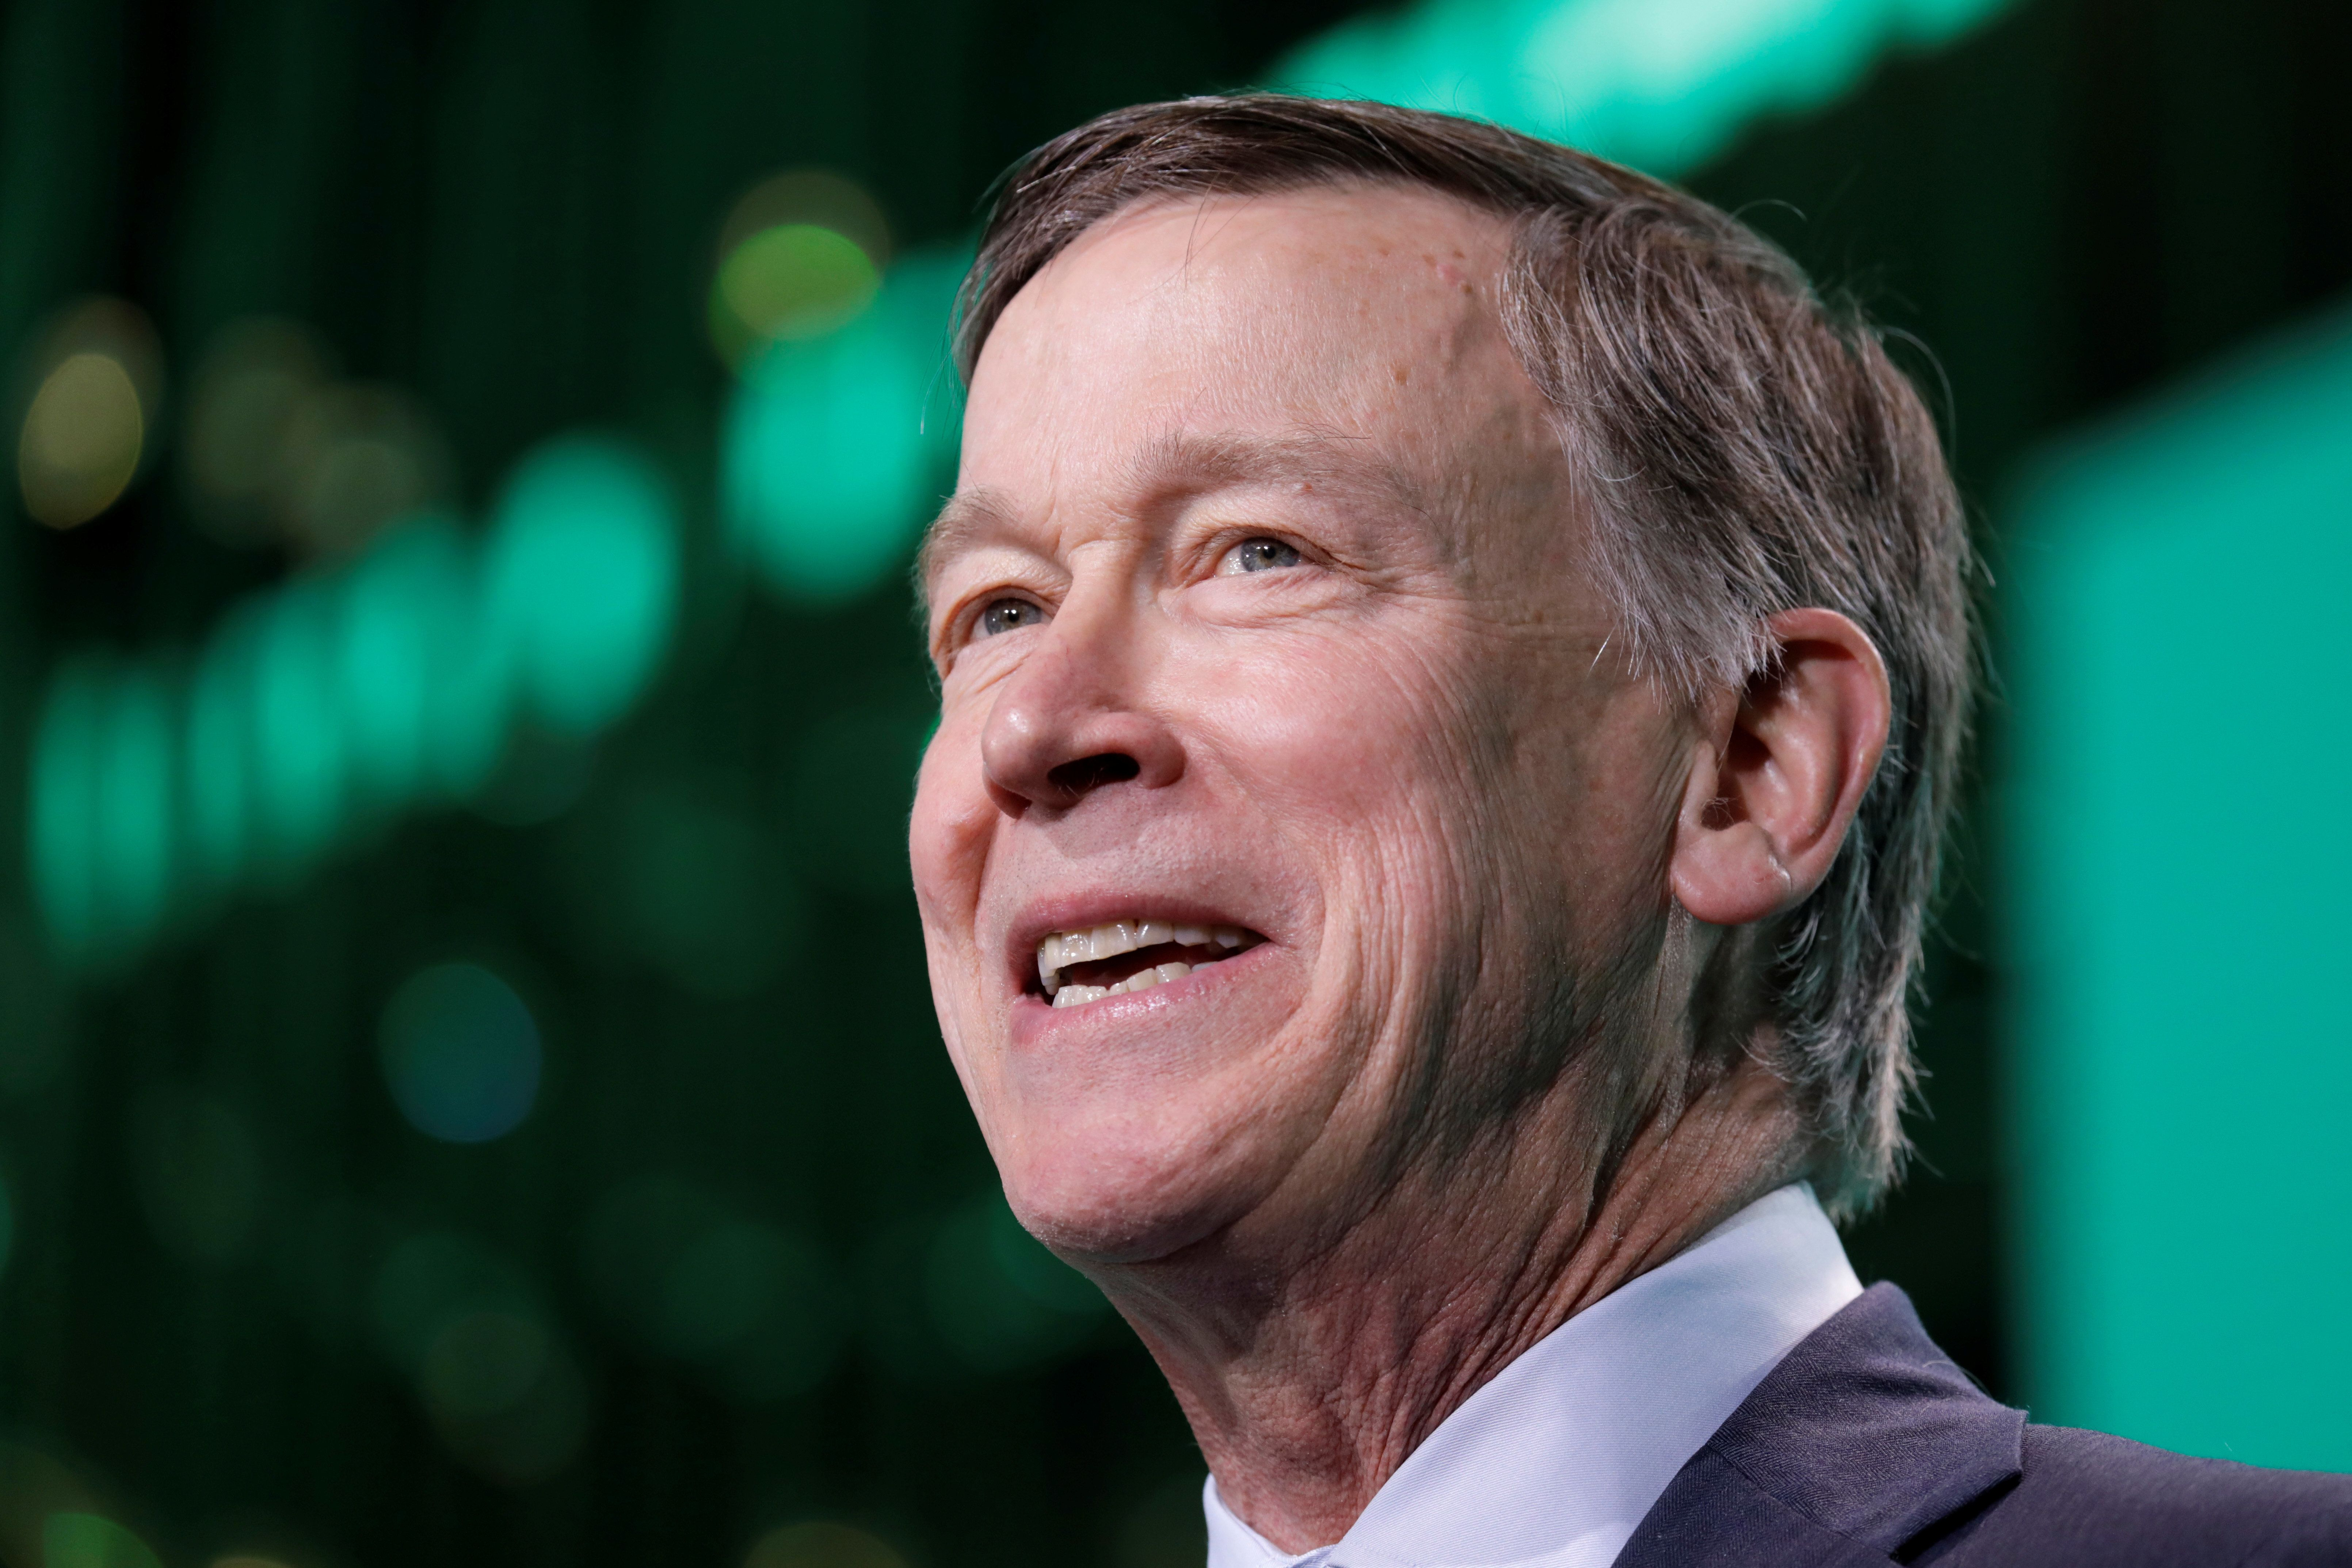 Former Colorado Gov. John Hickenlooper announced his presidential candidacy on Monday in a campaign video that ticked off his